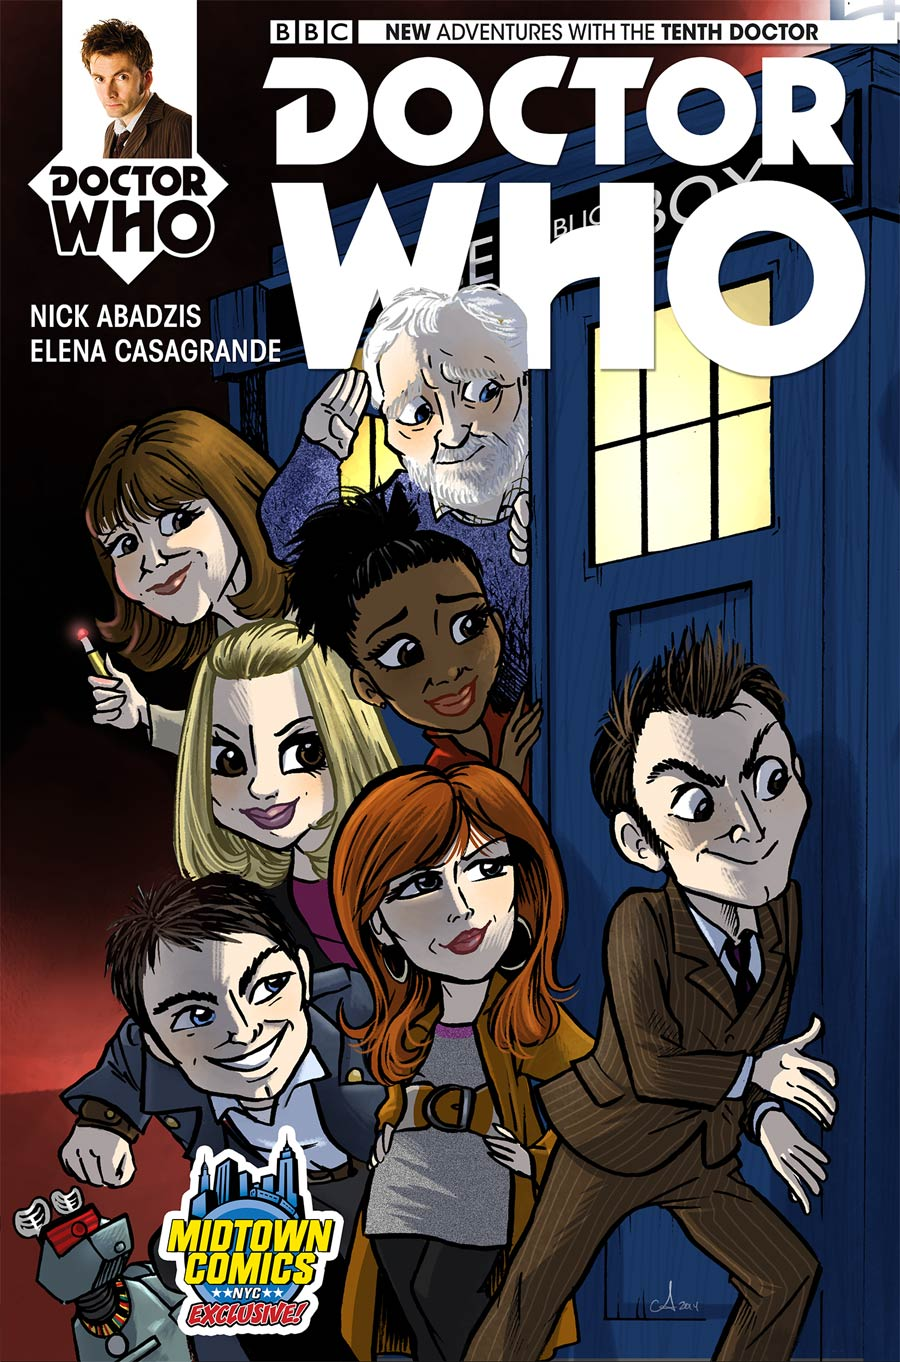 Doctor Who 10th Doctor #1 Cover C Midtown Exclusive Amy Mebberson Variant Cover (1 Of 2)